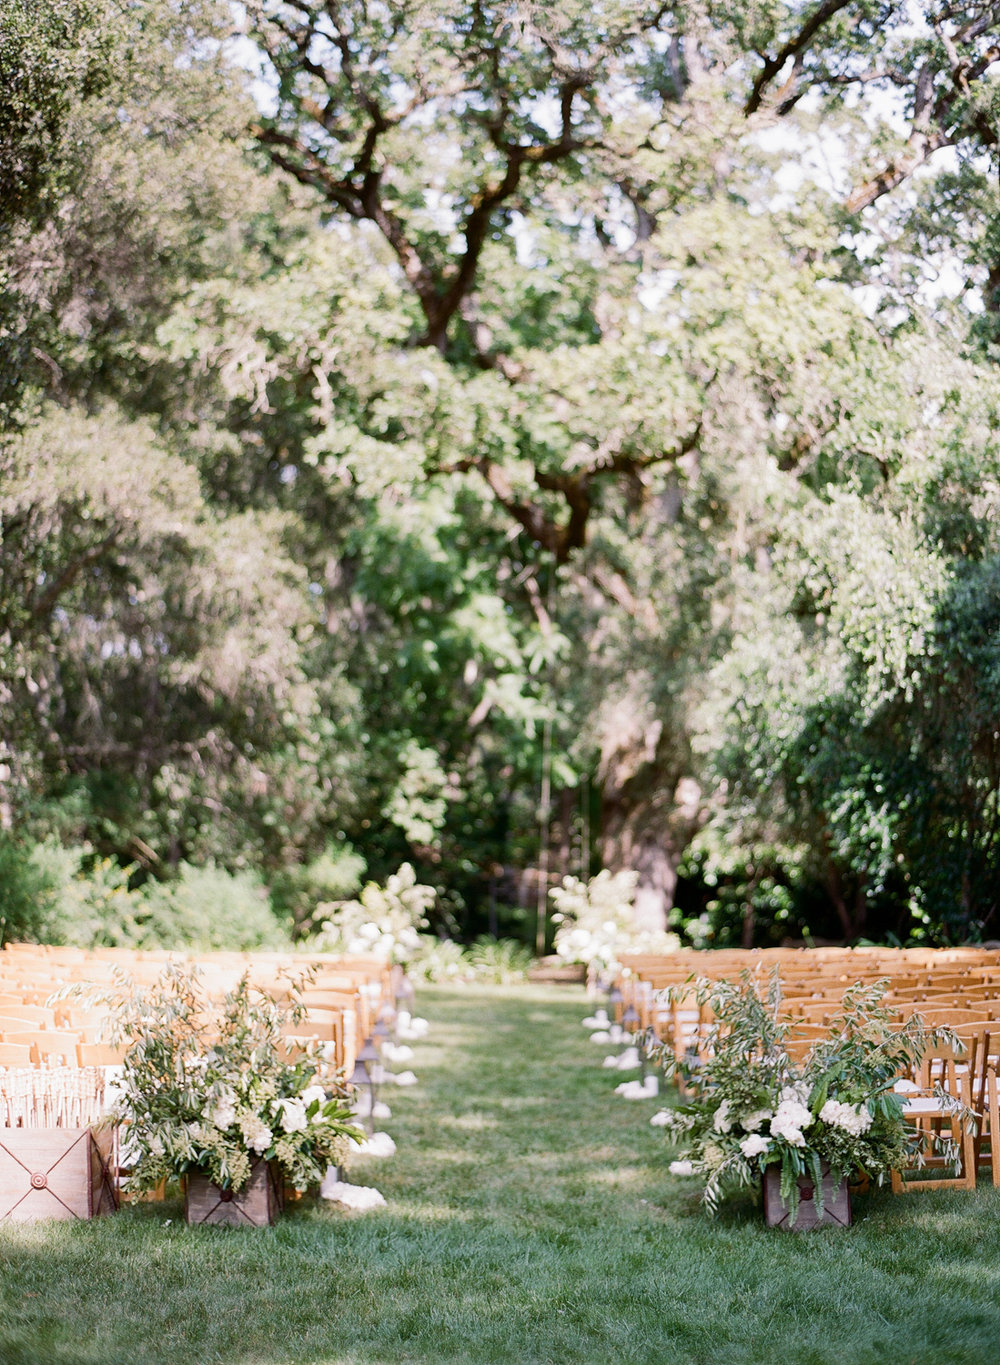 Outdoor ceremony space under oak trees in Woodside, California; Sylvie Gil Photography